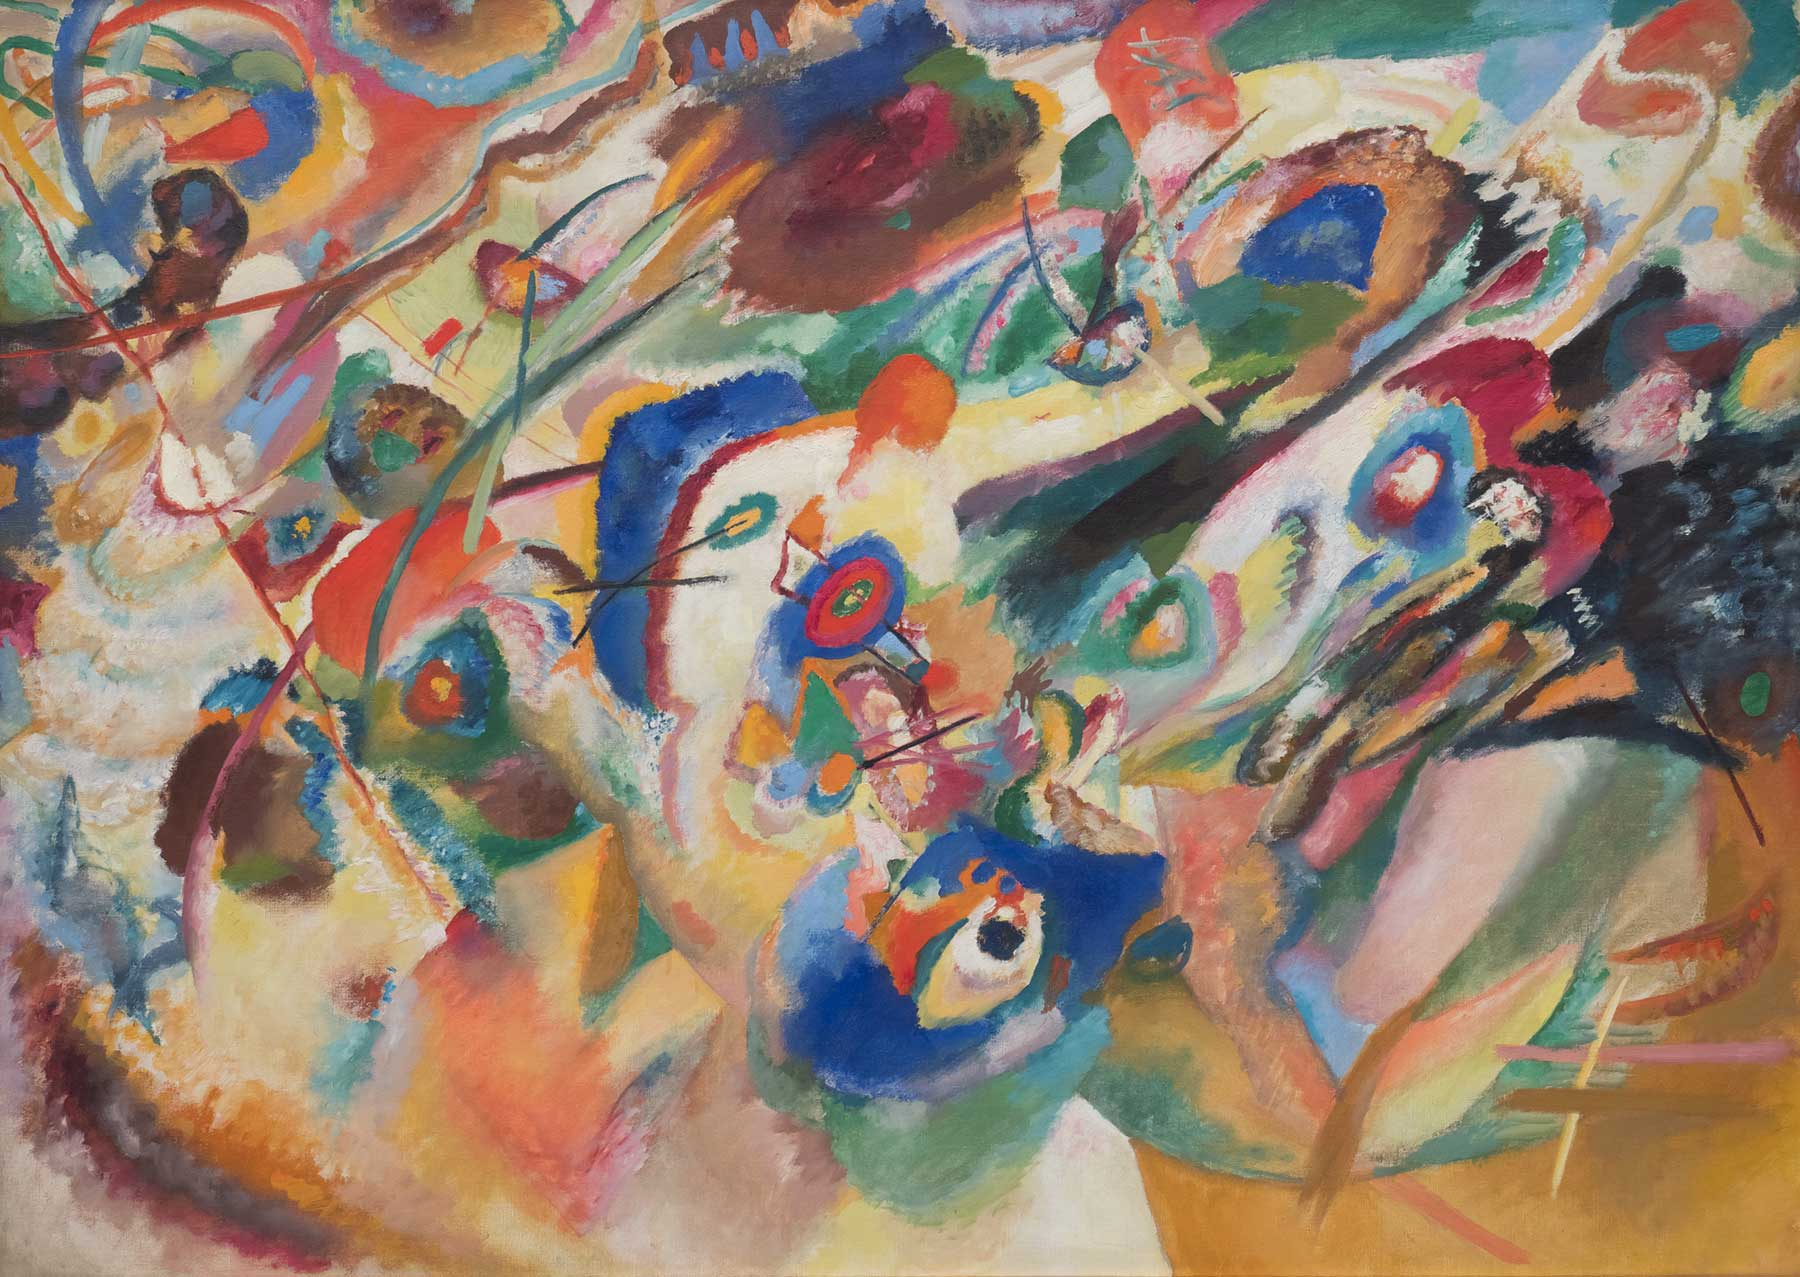 Sketch 2 for Composition VII - Wassily Kandinsky - Full Composition